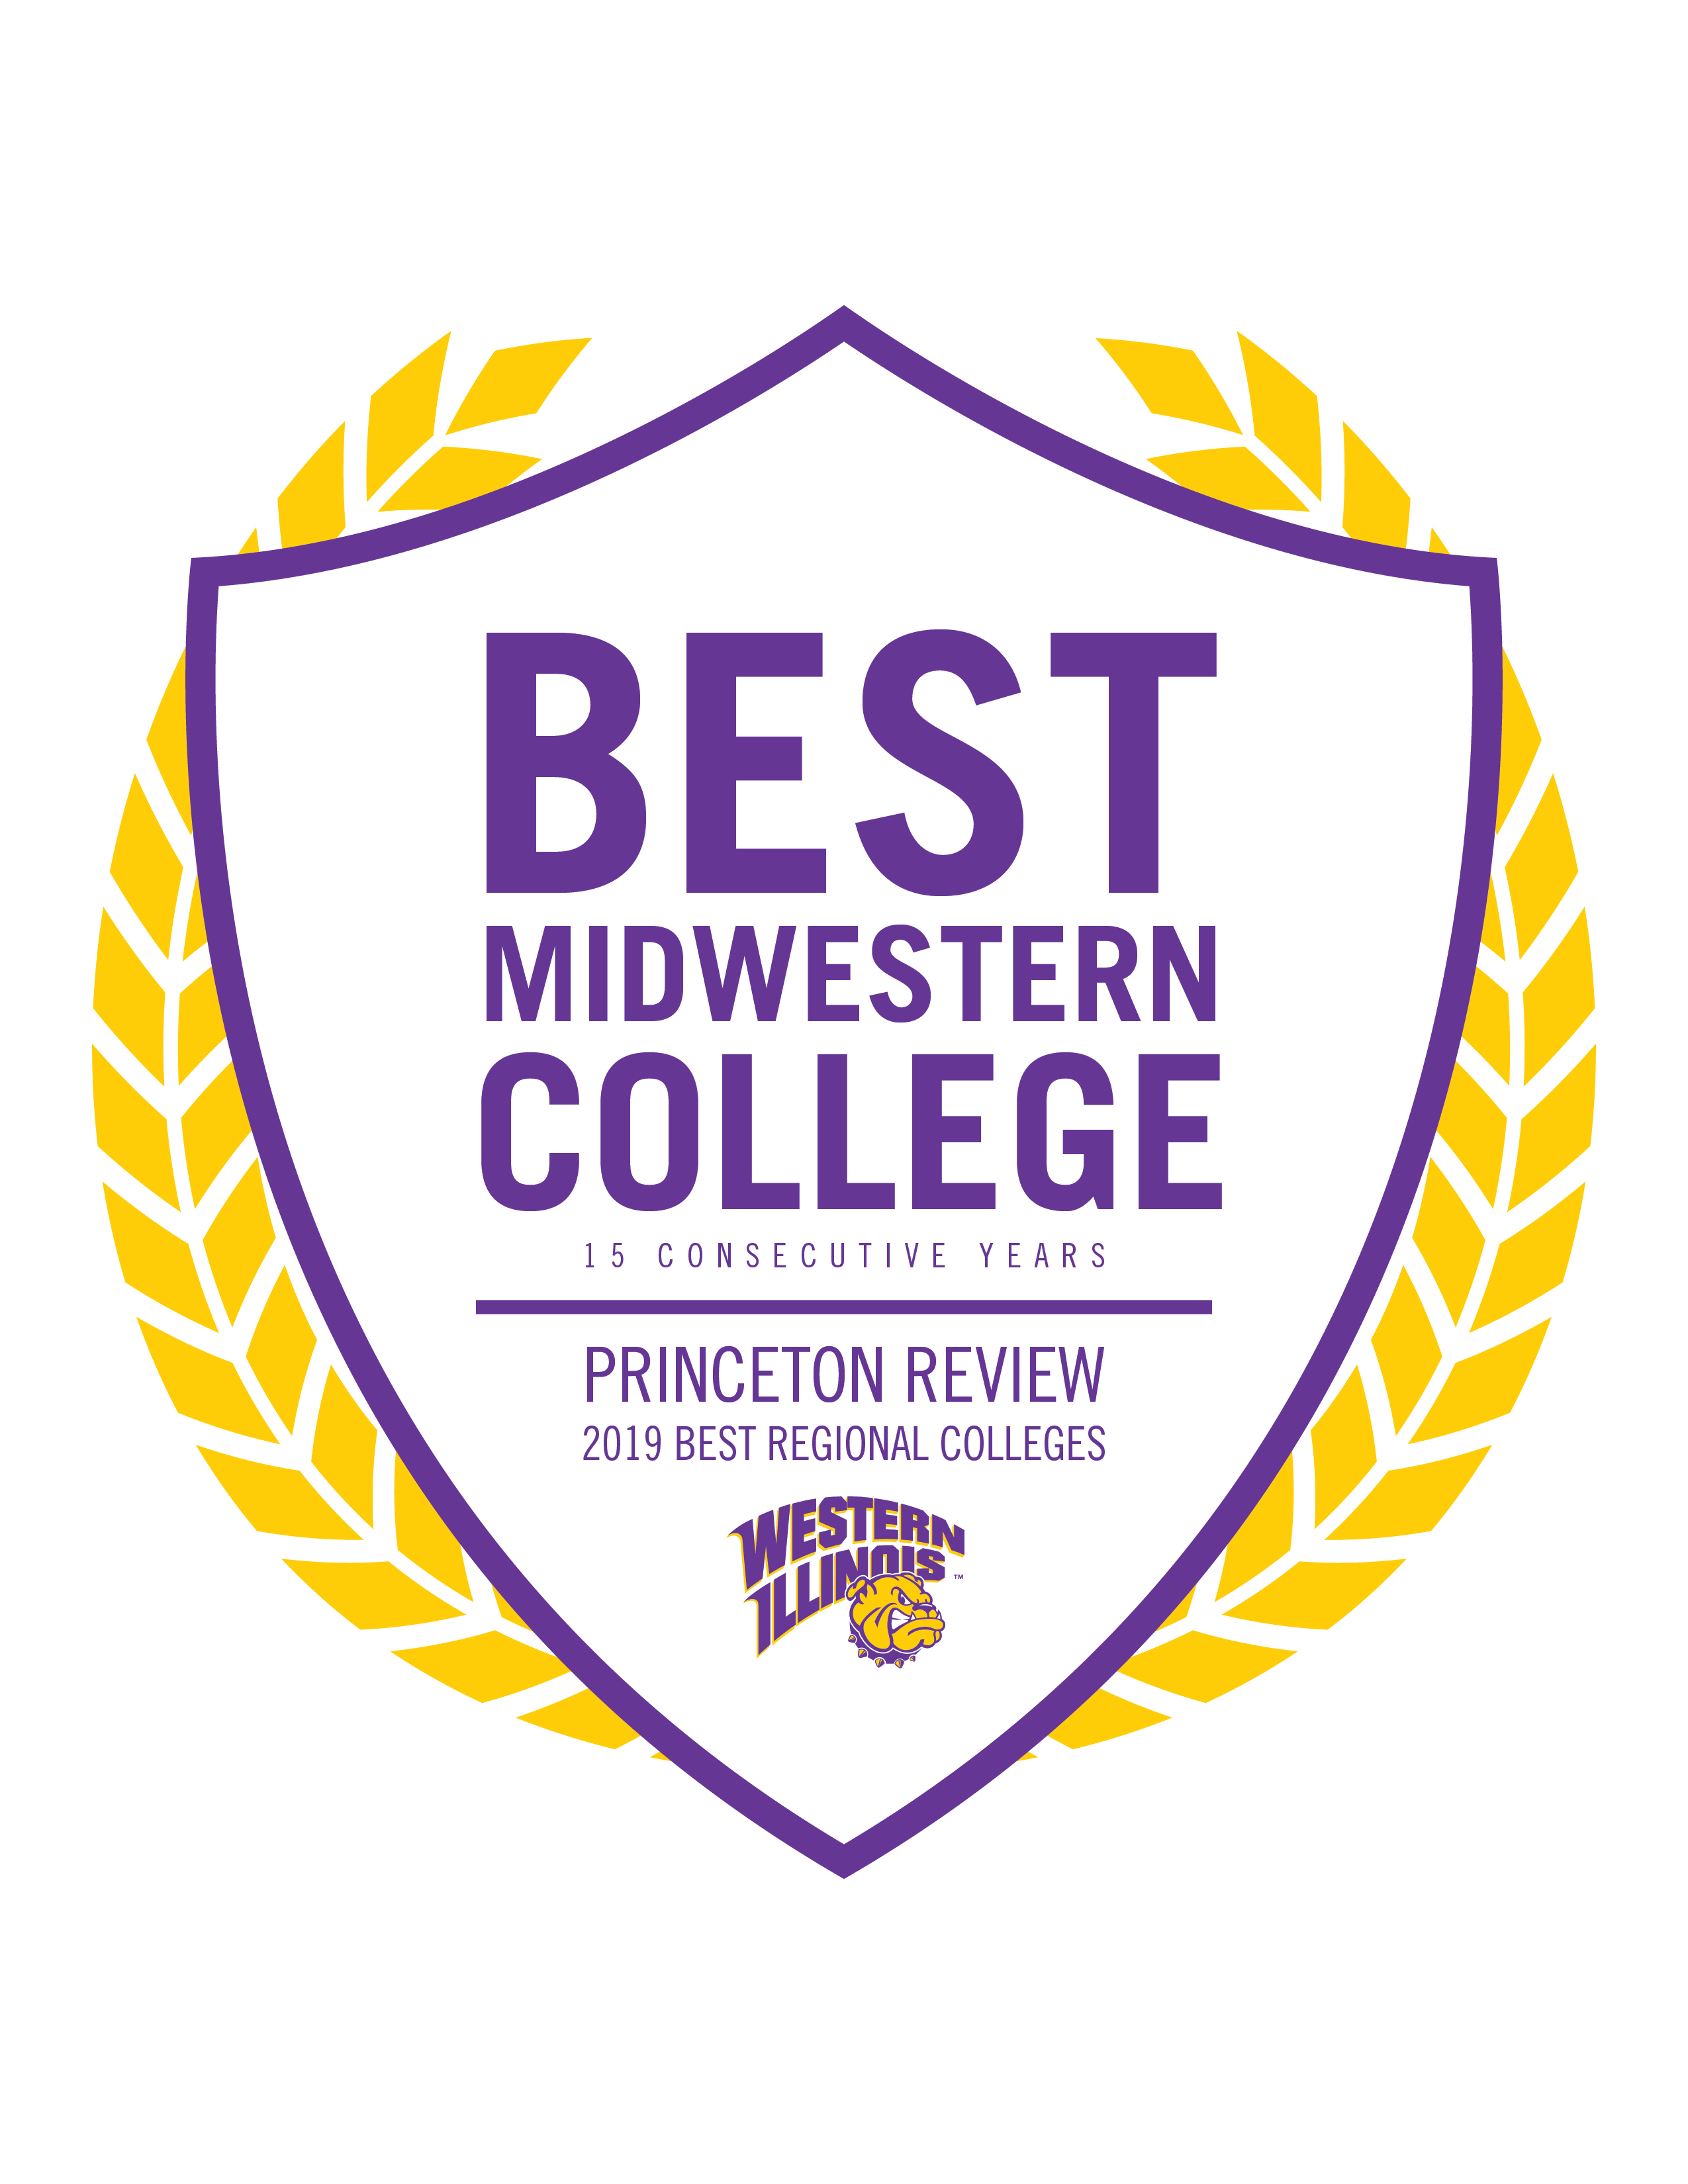 Princeton Review Best Regional Colleges, 15 consecutive years